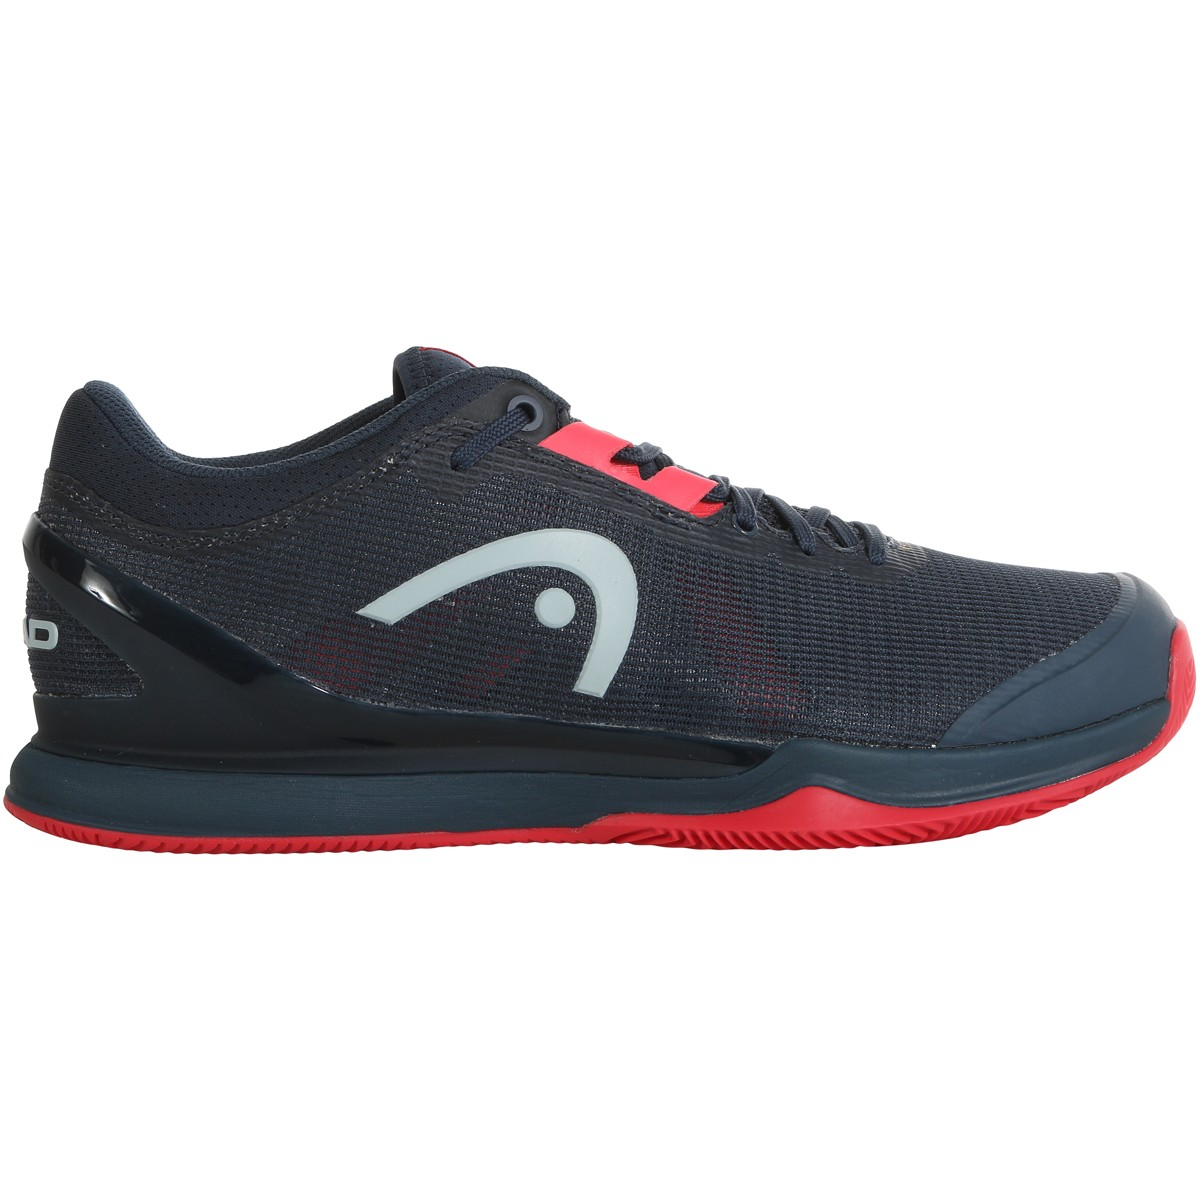 CHAUSSURES HEAD SPRINT PRO 3.0 TERRE BATTUE